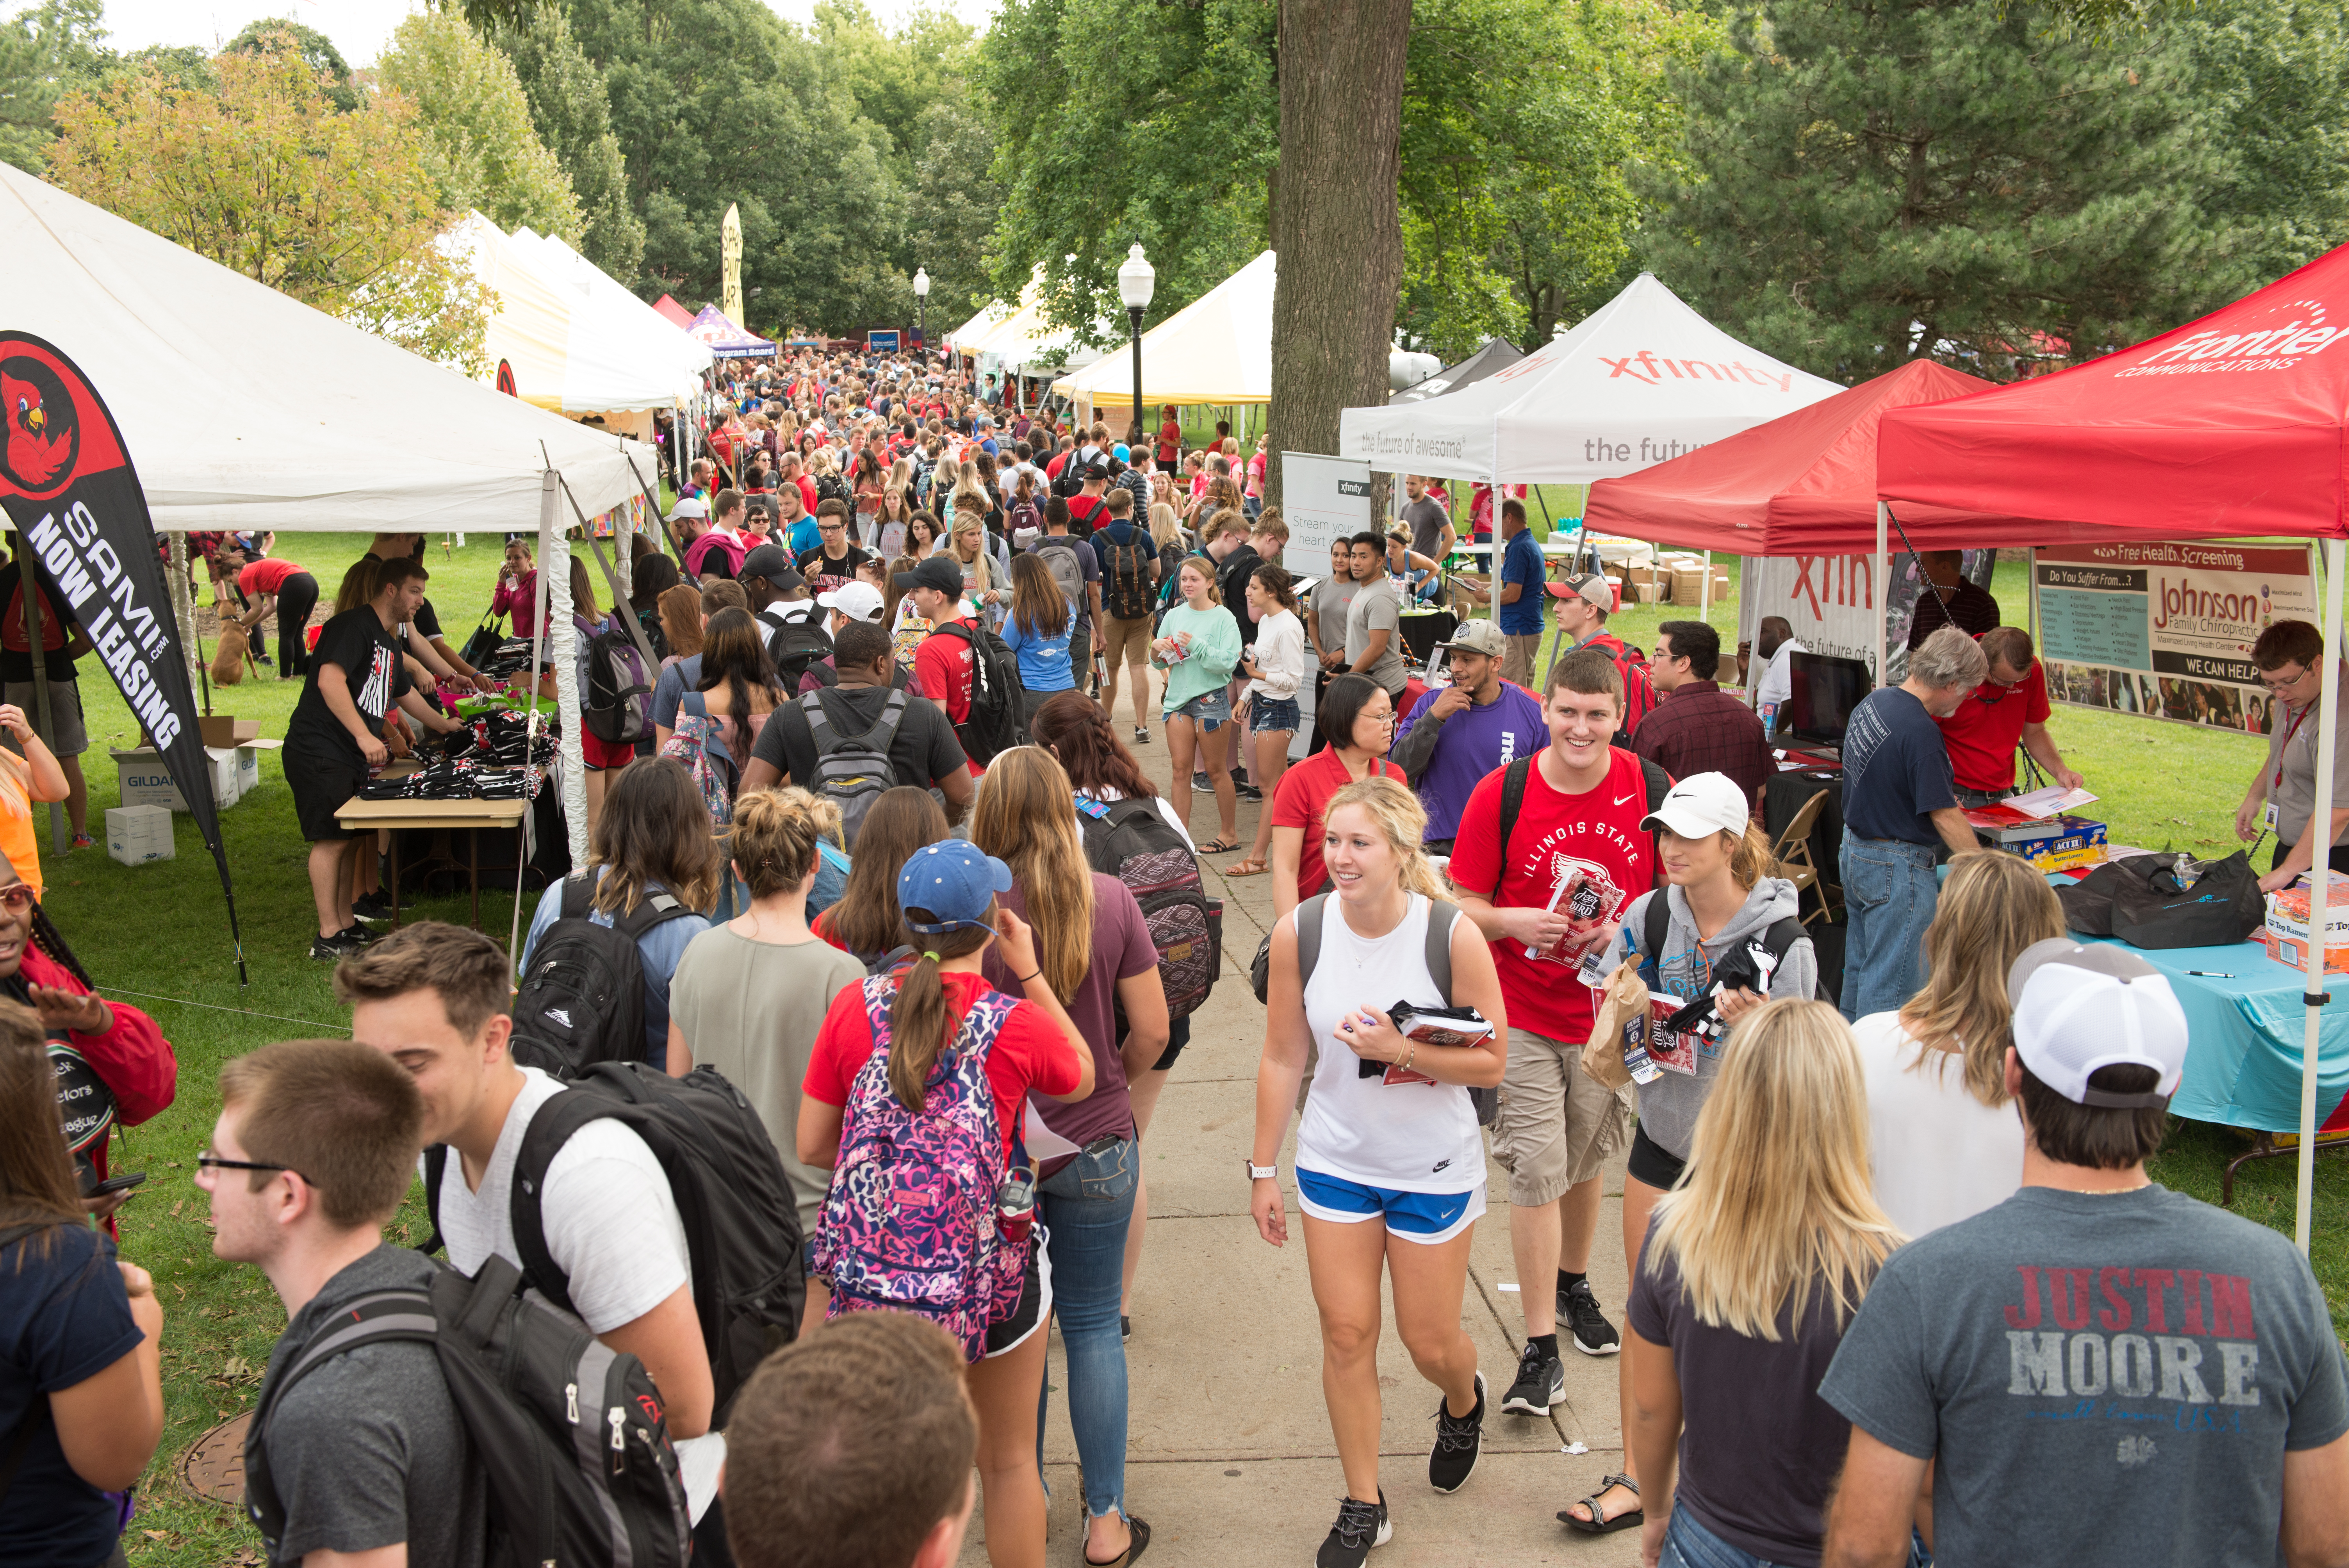 A large group of students on Illinois State's Quad between tents and tables set up for Festival ISU